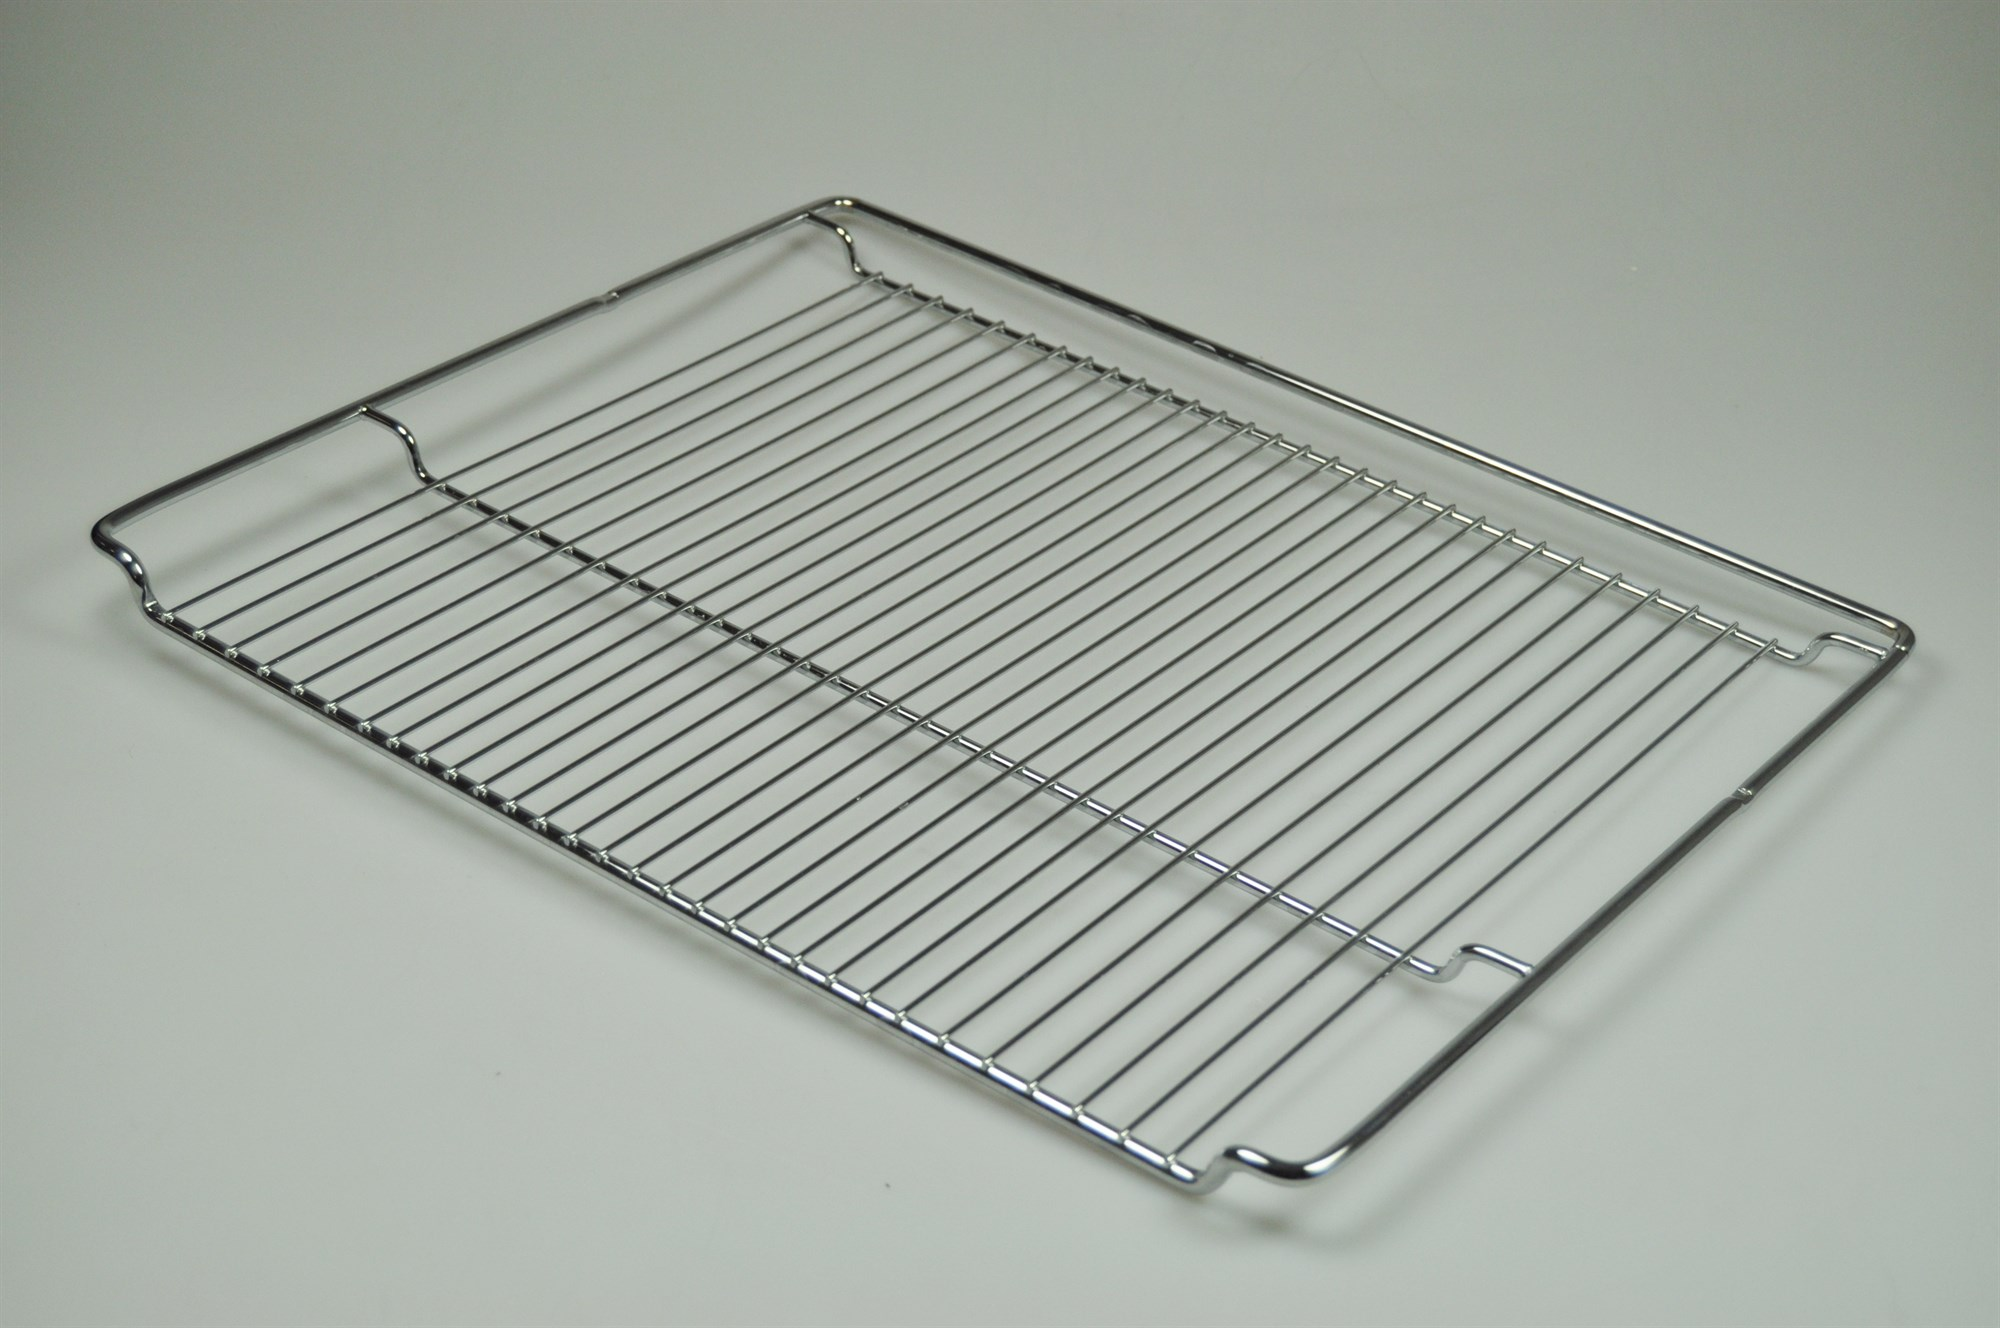 Oven Wire Grid Bosch Cooker Amp Hob 22 Mm X 463 Mm X 375 Mm